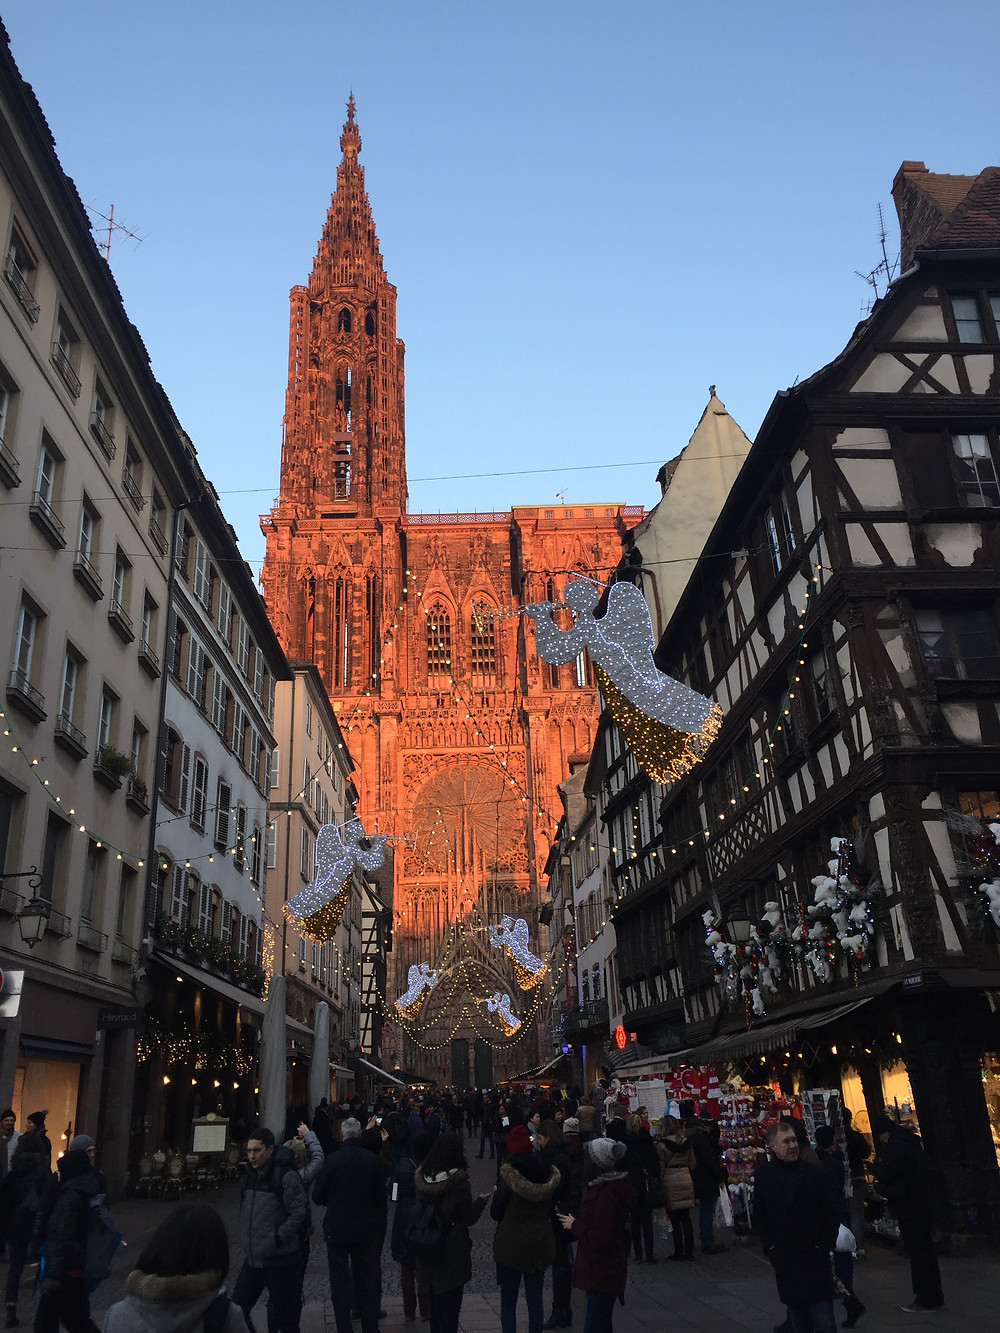 The Strasbourg Cathedral in the setting sun during Christmas